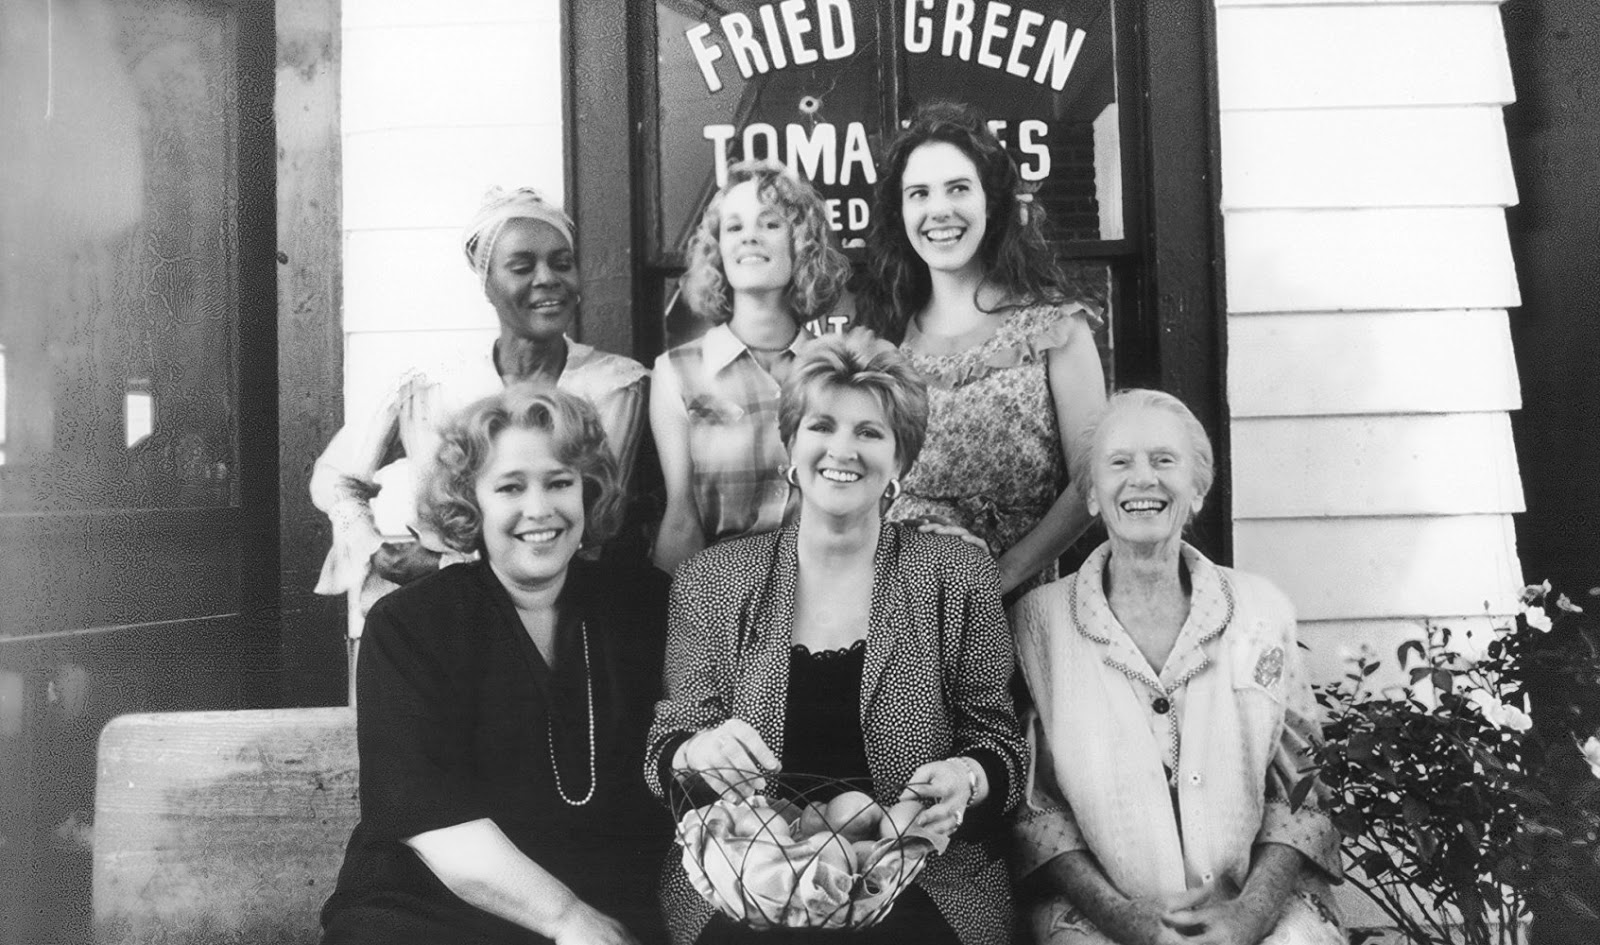 fried green tomatoes character analysis